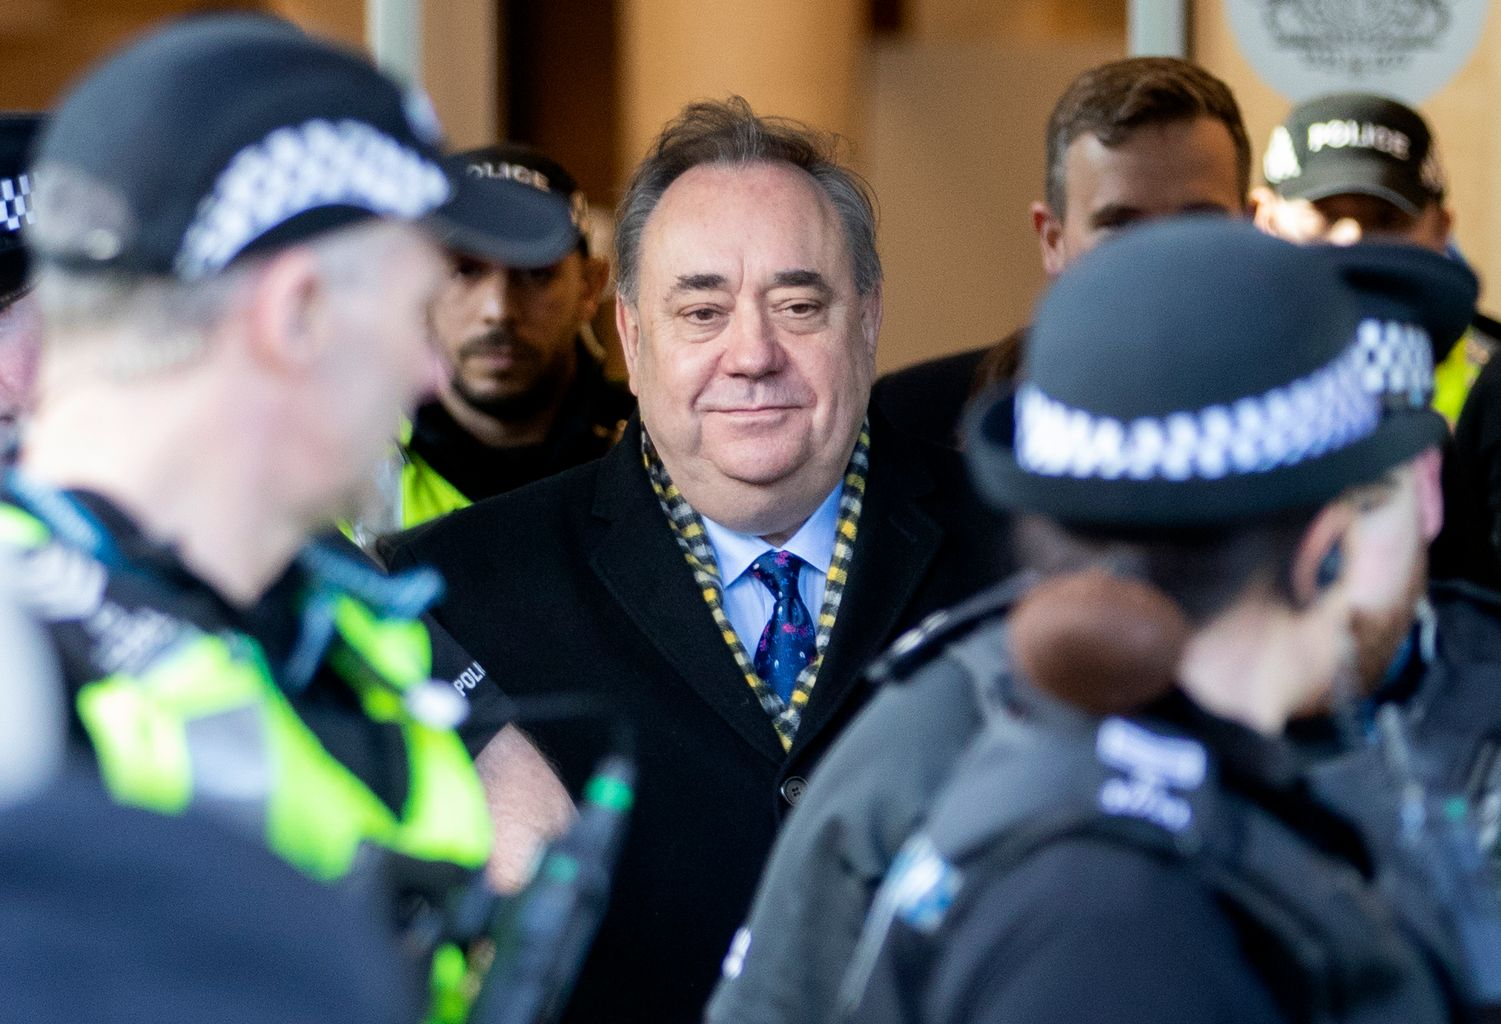 Alex Salmond in court in Glasgow